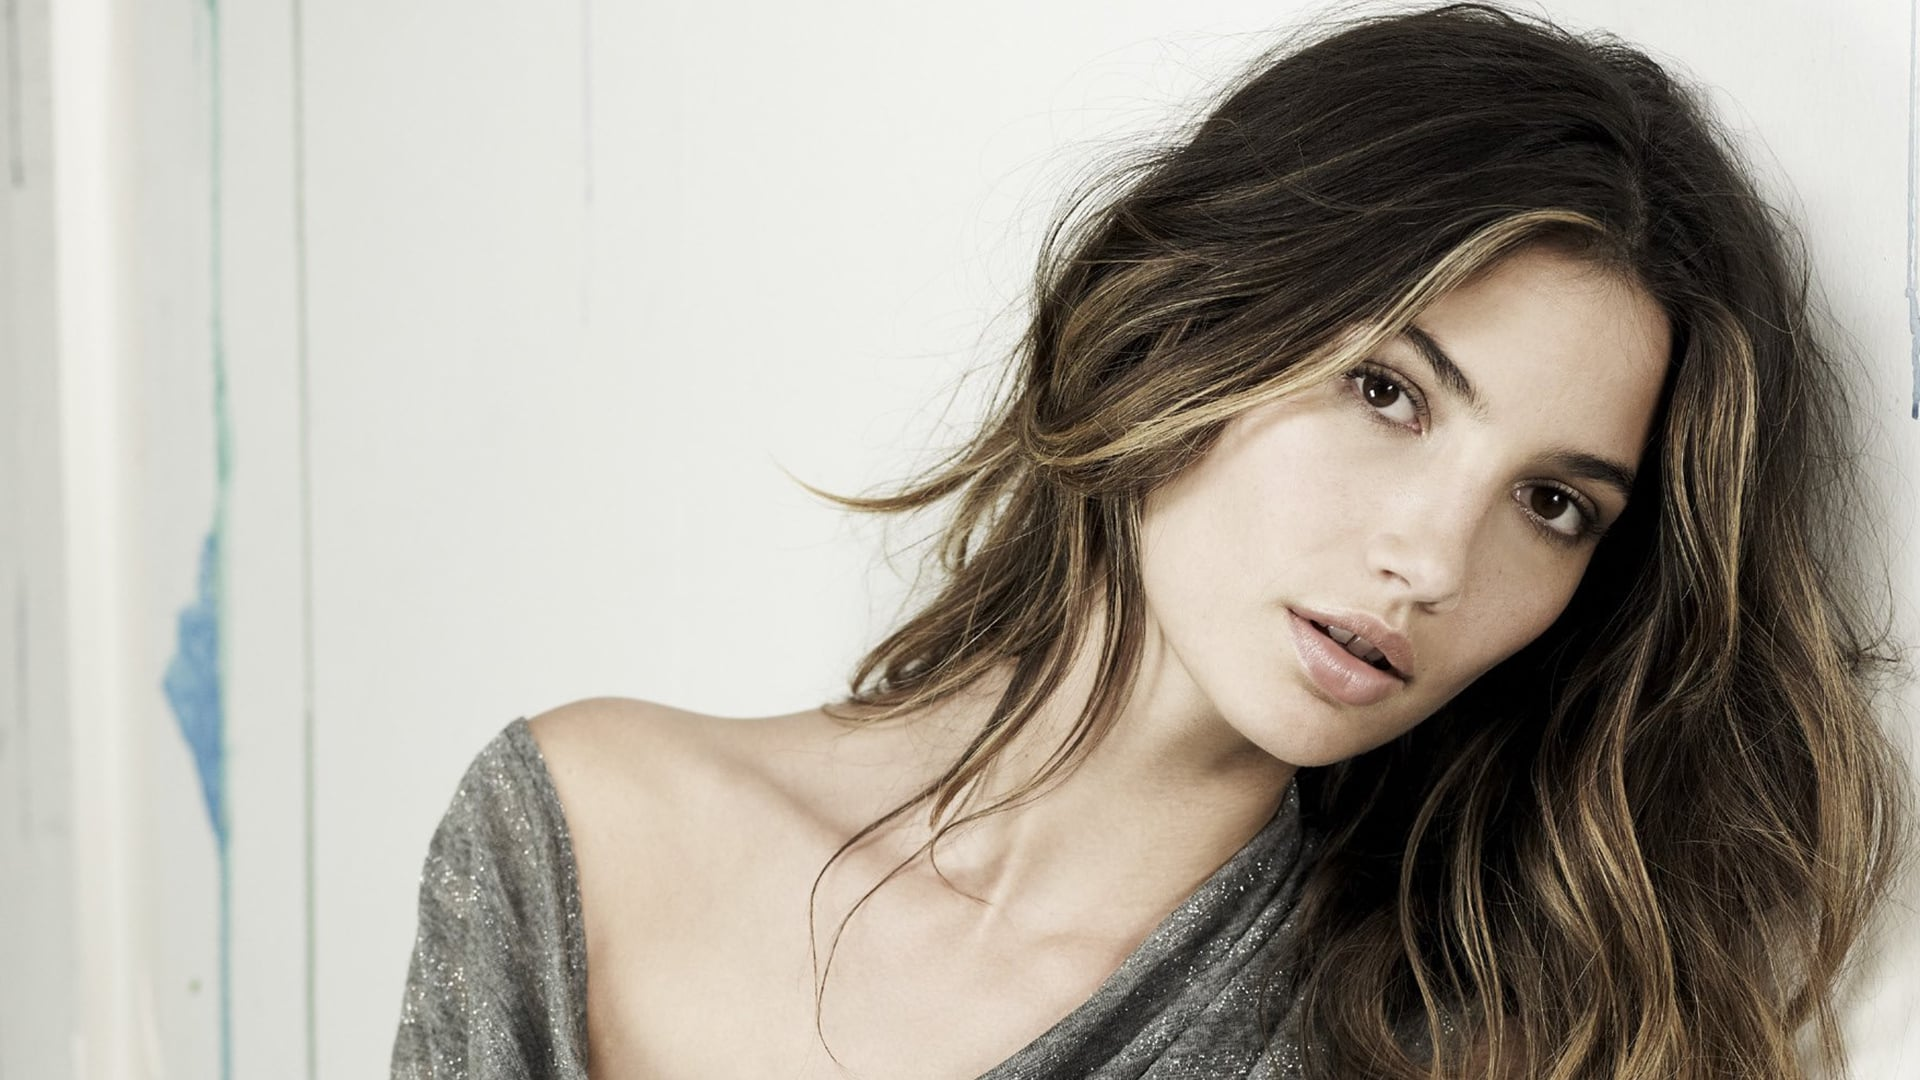 lily aldridge wallpaper 57101